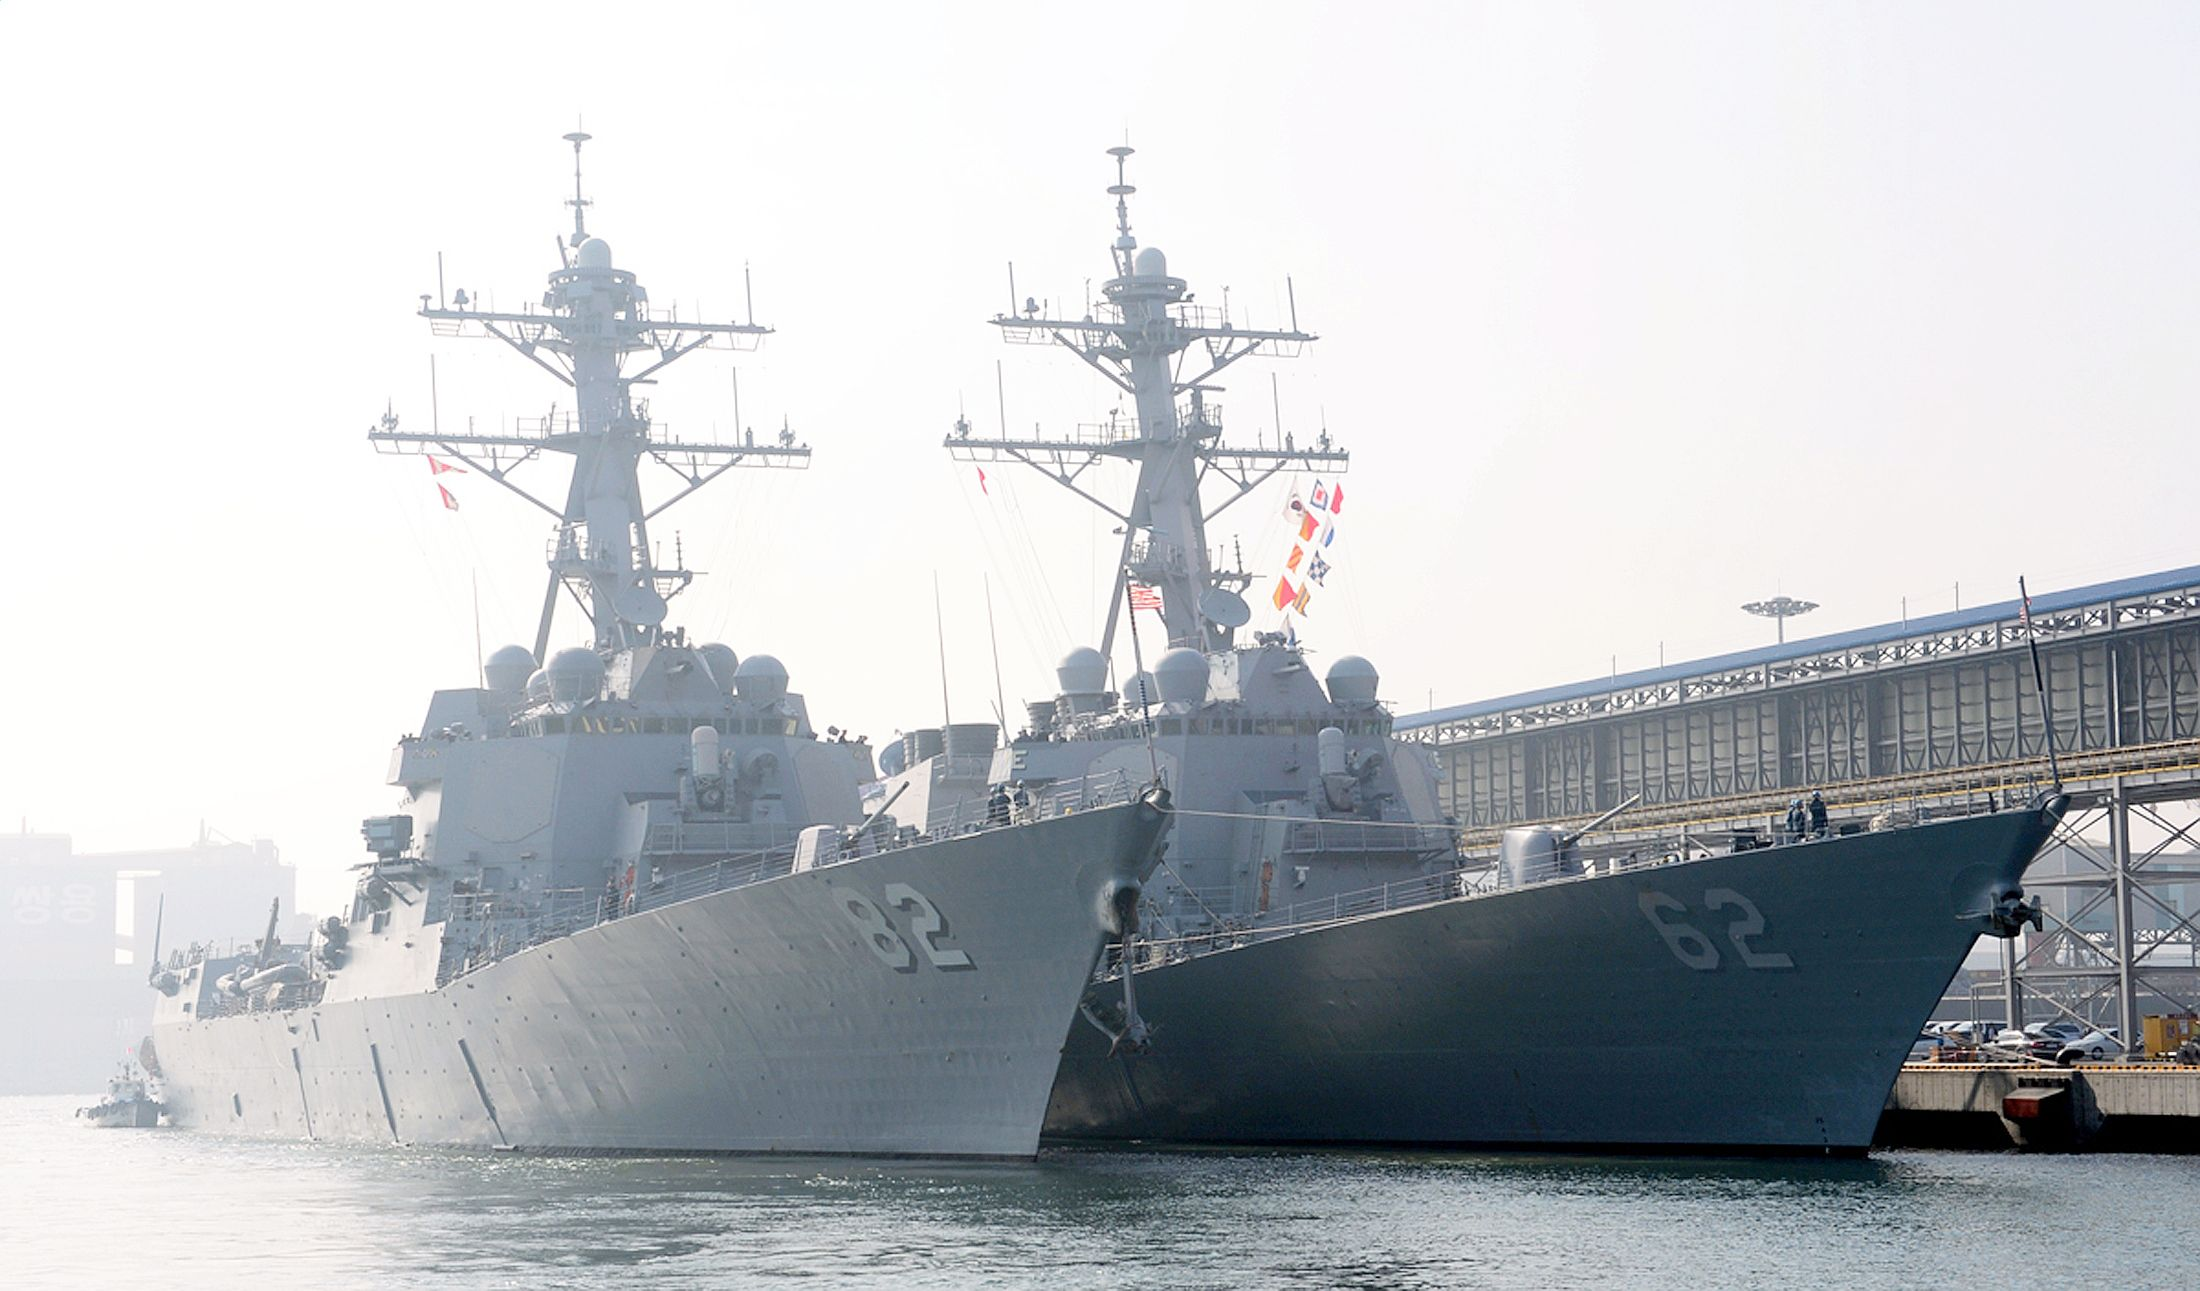 guided-missile destroyer USS Lassen (DDG 82) arrives to participate in the annual joint military exercises, dubbed Key Resolve, between South Korea and the United States